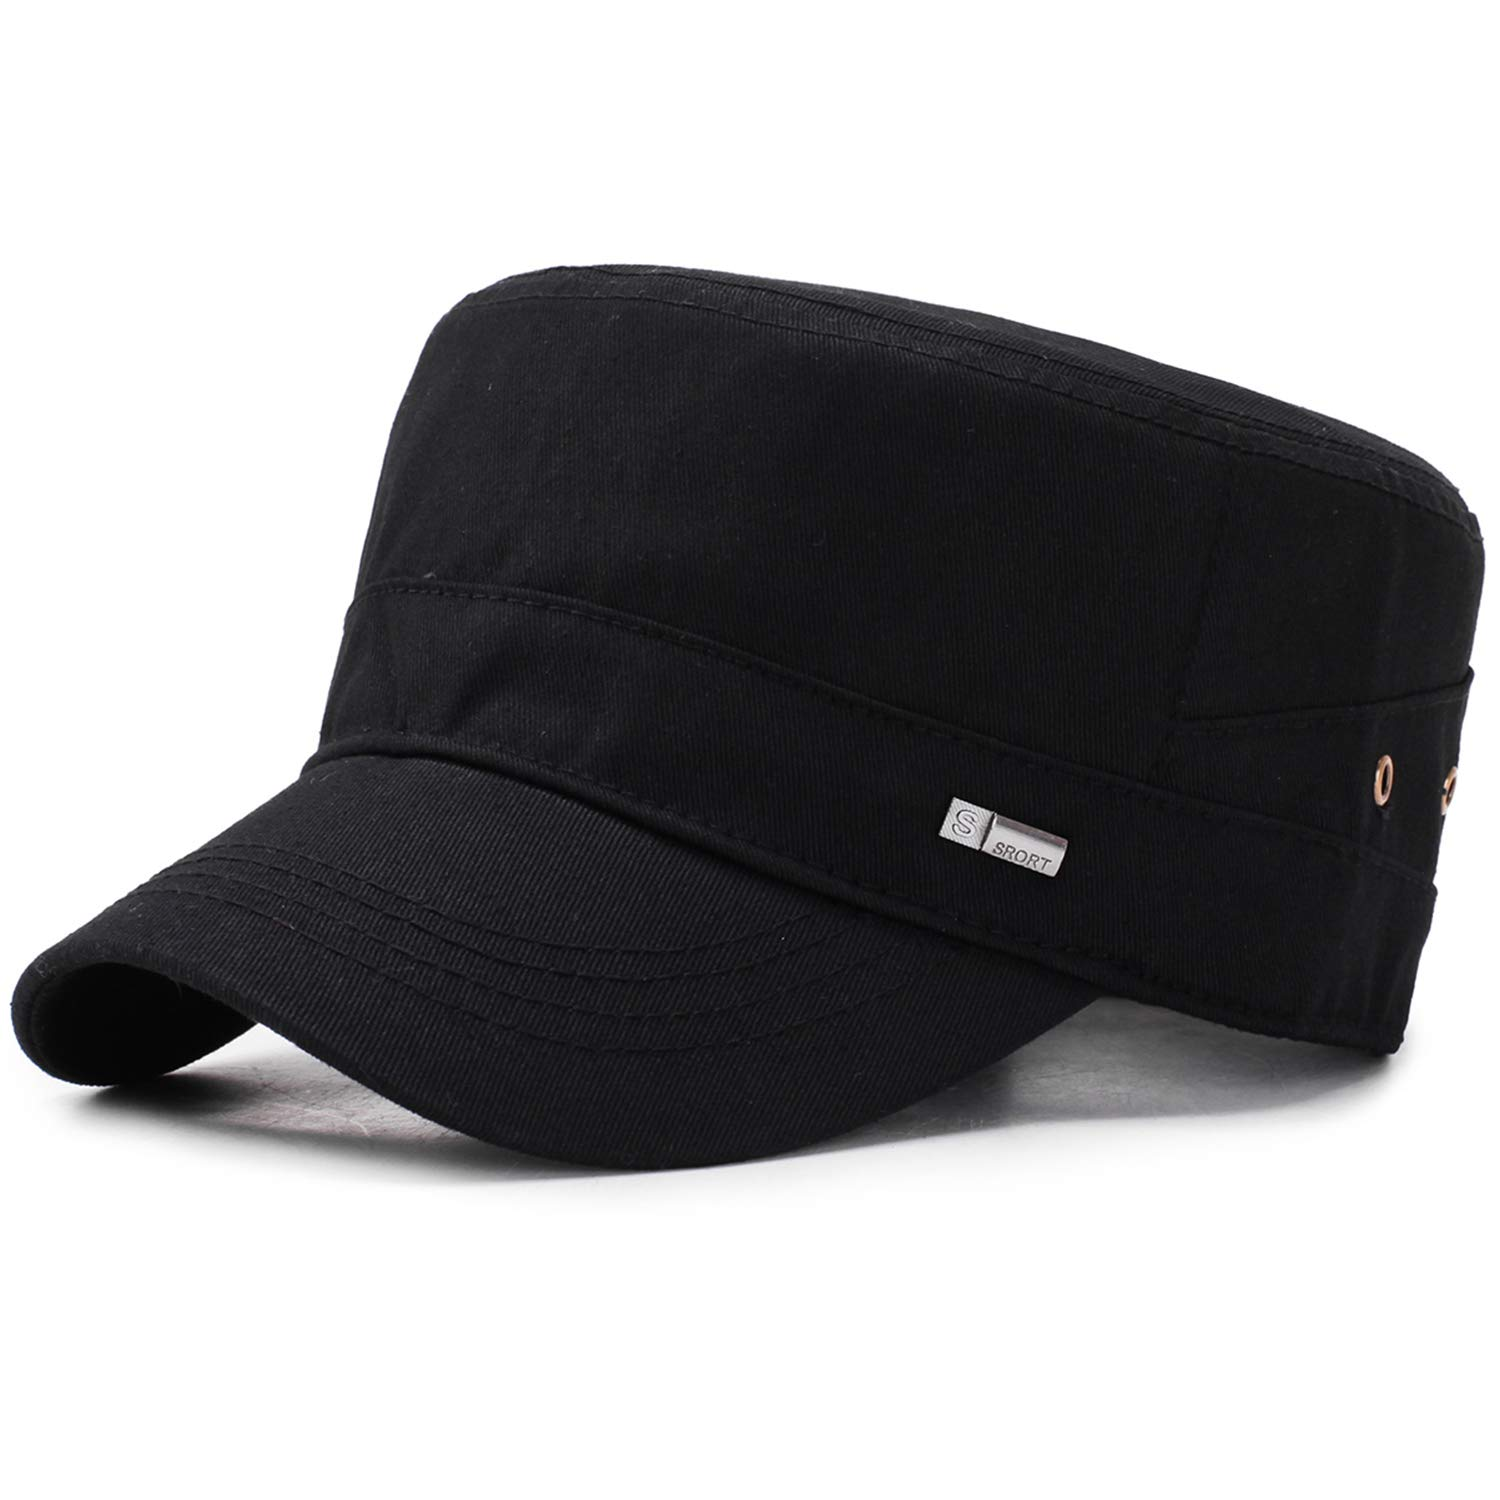 WETOO Unisex Cotton Army Caps Womens Classical Military Hats Adjustable Flat Top Mens Cadet Hats Outdoor Casual Sun Visor Hat